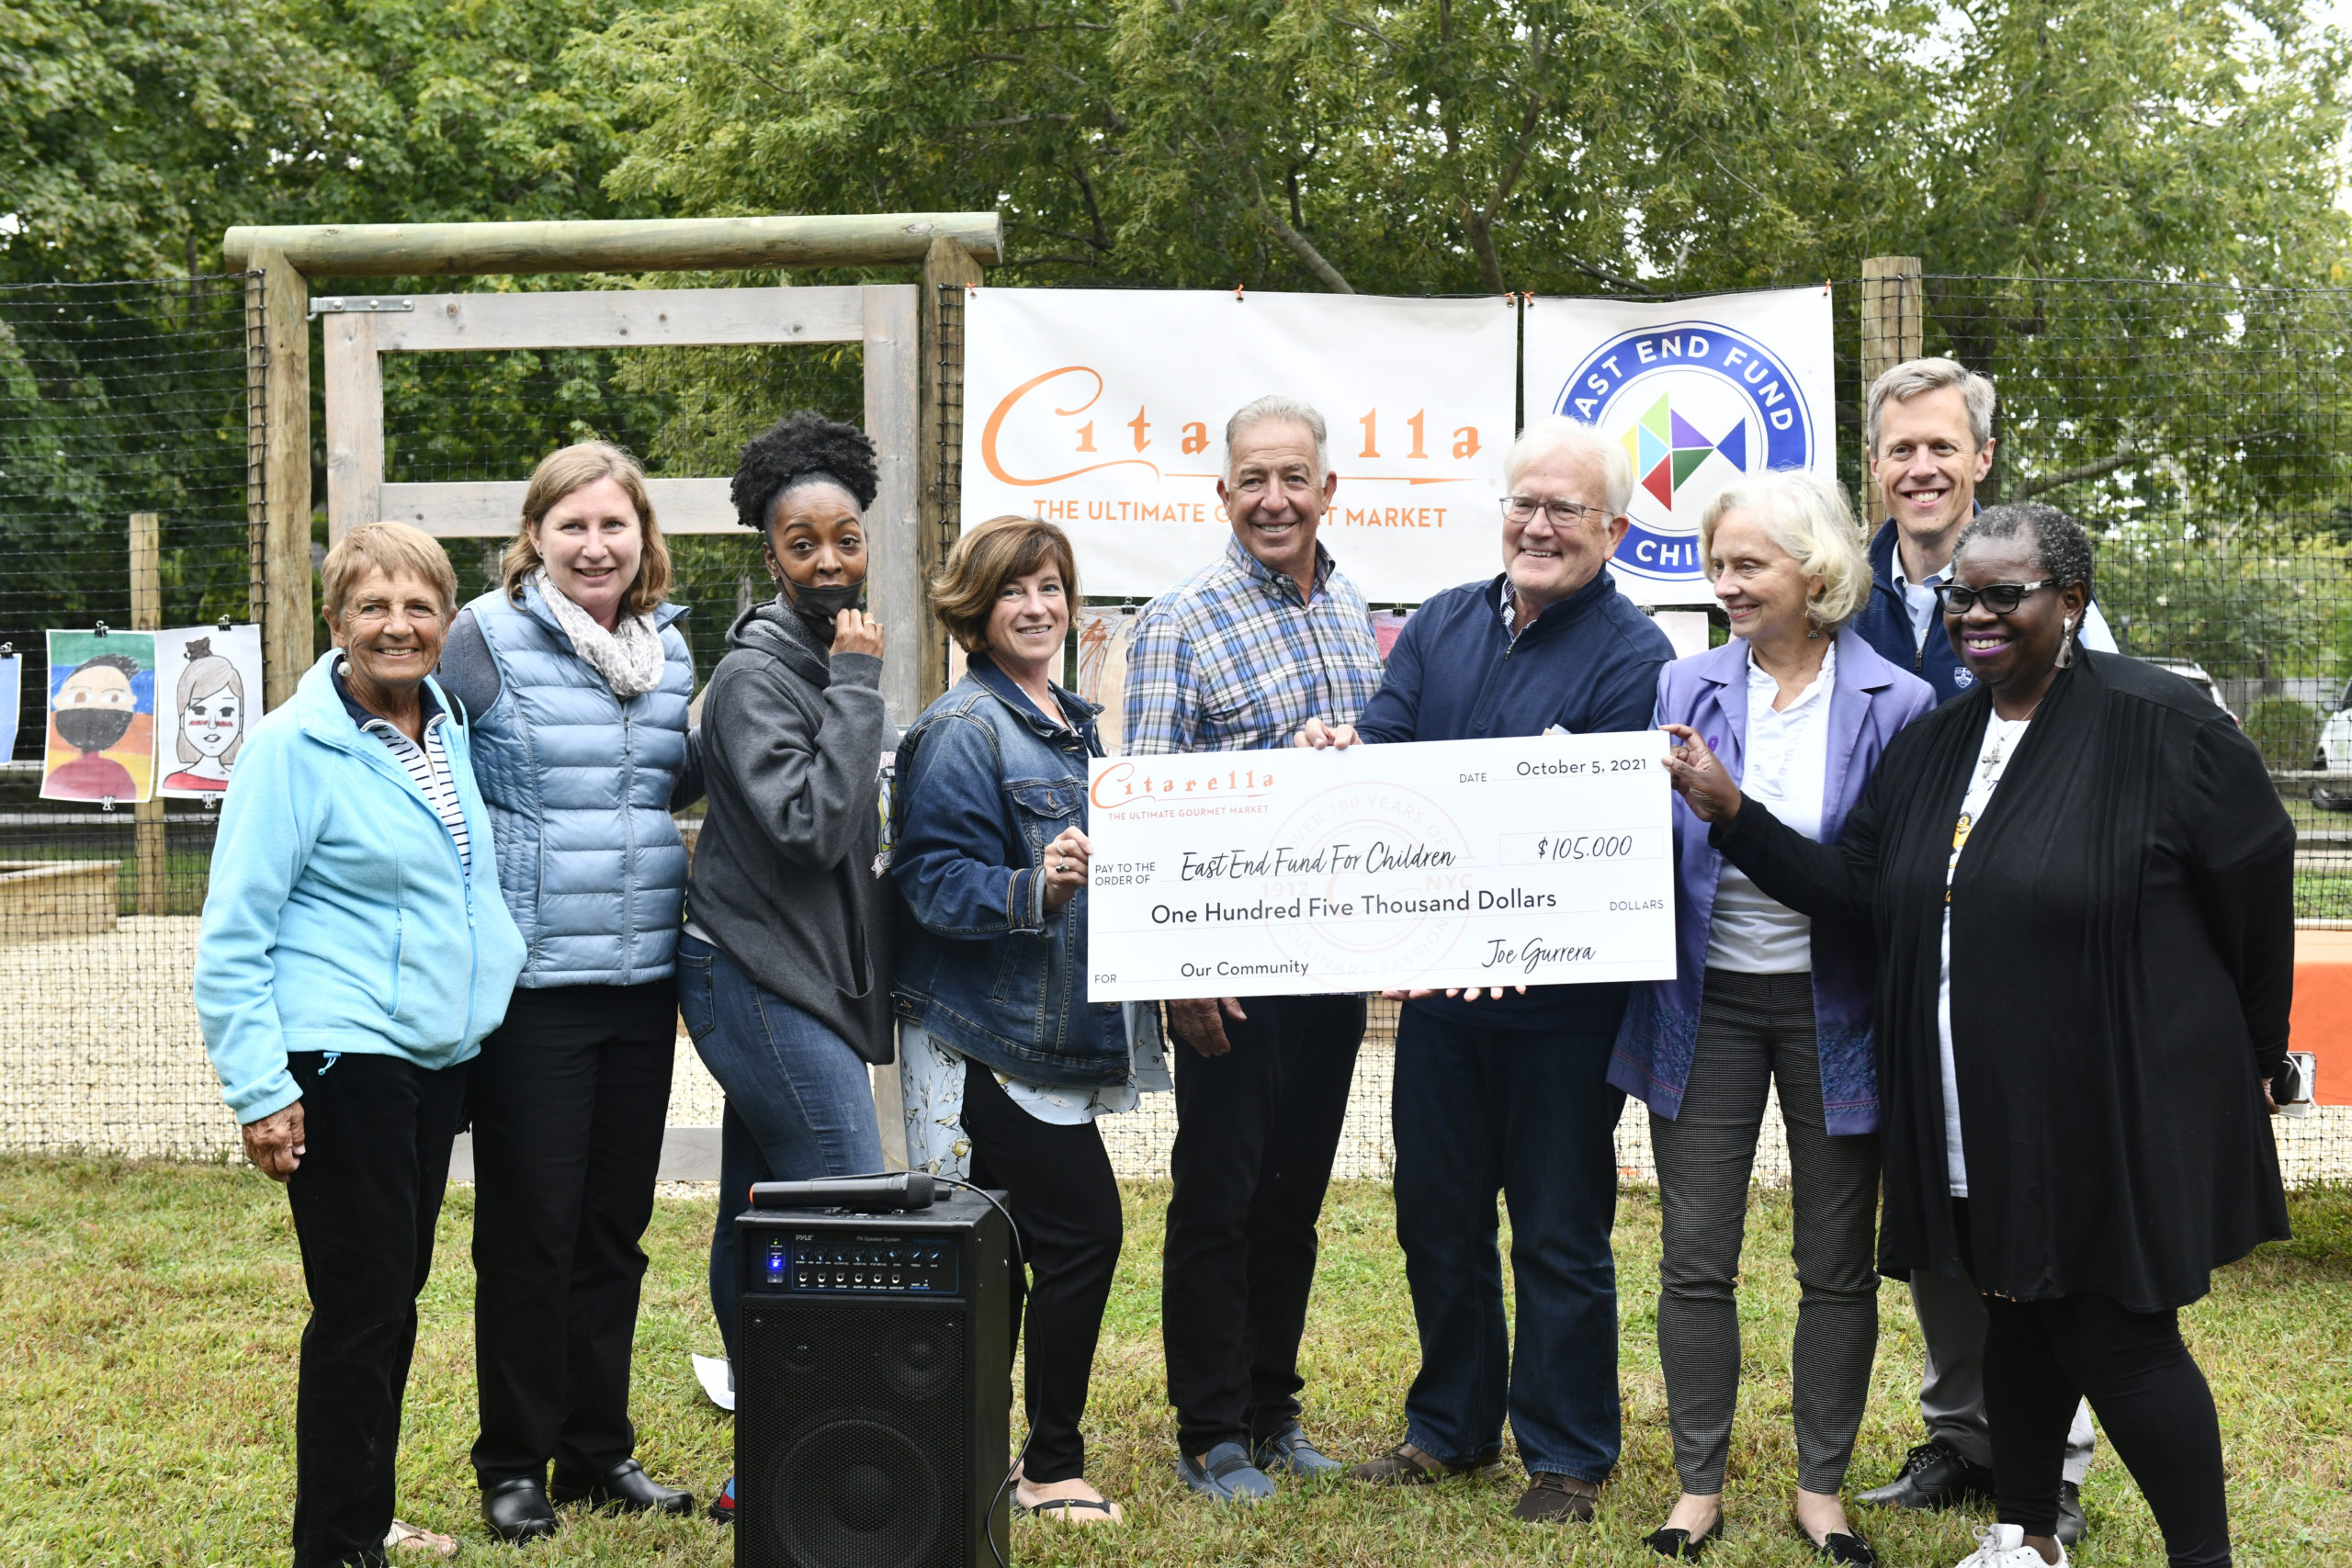 """Citarella owner Joe Gurrera presented the East End Fund for Children with a check for $105,000 at the Bridgehampton location on October 5. The funds are  the final tally from Citarella's  summer's shopping RoundUp fundraiser, which was held from  July 30 through Labor Day which encouraged shoppers to """"roundup"""" at the end of their purchase.  Left to right,  Mary Topping of the Southampton Youth Association (SYA); Rebecca Taylor from Project Most; Alicia Austin of SYA; Theresa Roden from i-Tri; Citarella owner Joe Gurrera; Tim Frazier of the The Eleanor Whitmore Early Childhood Center; Loretta Davis of the Retreat; Stephen Long of CMEE and Bonnie Cannon of the (The Bridgehampton Child Care & Recreational Center.   DANA SHAW"""